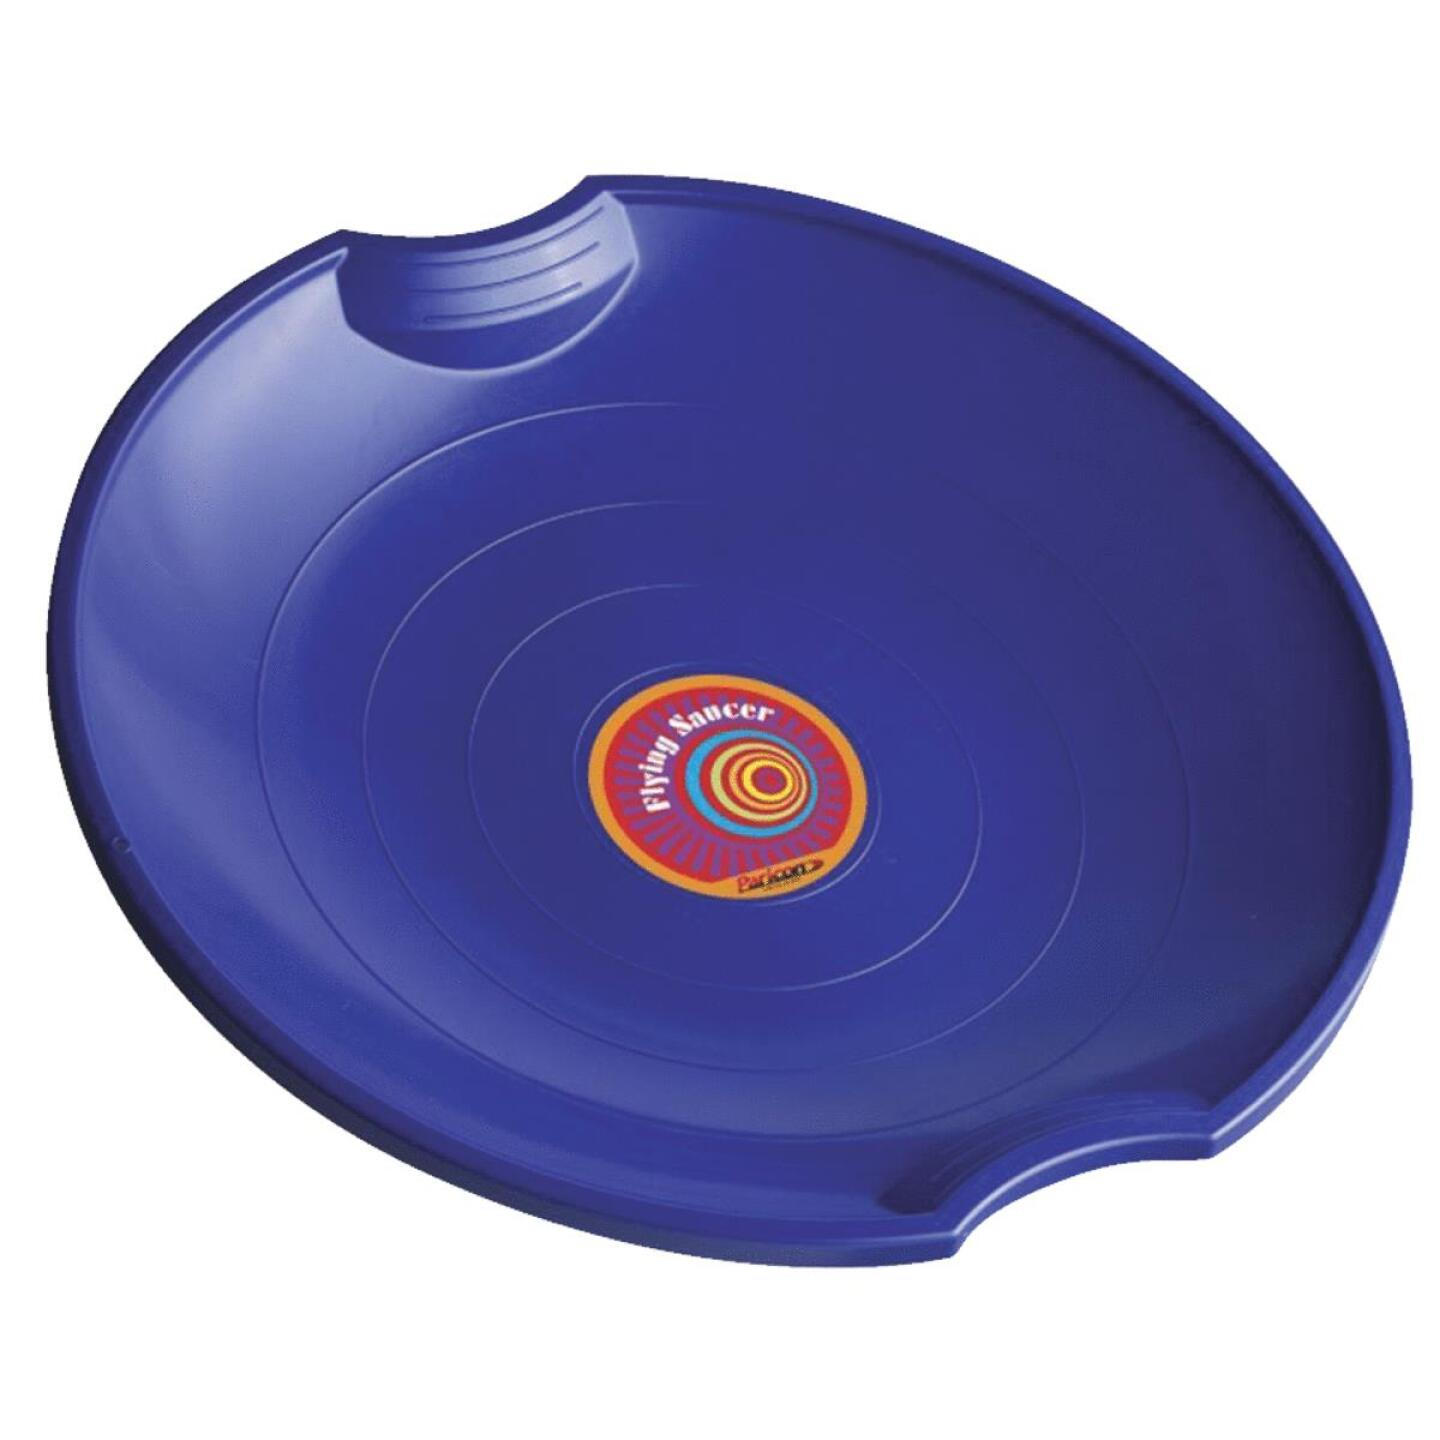 Flexible Flyer 26 in. Polyethylene Saucer Sled Image 1